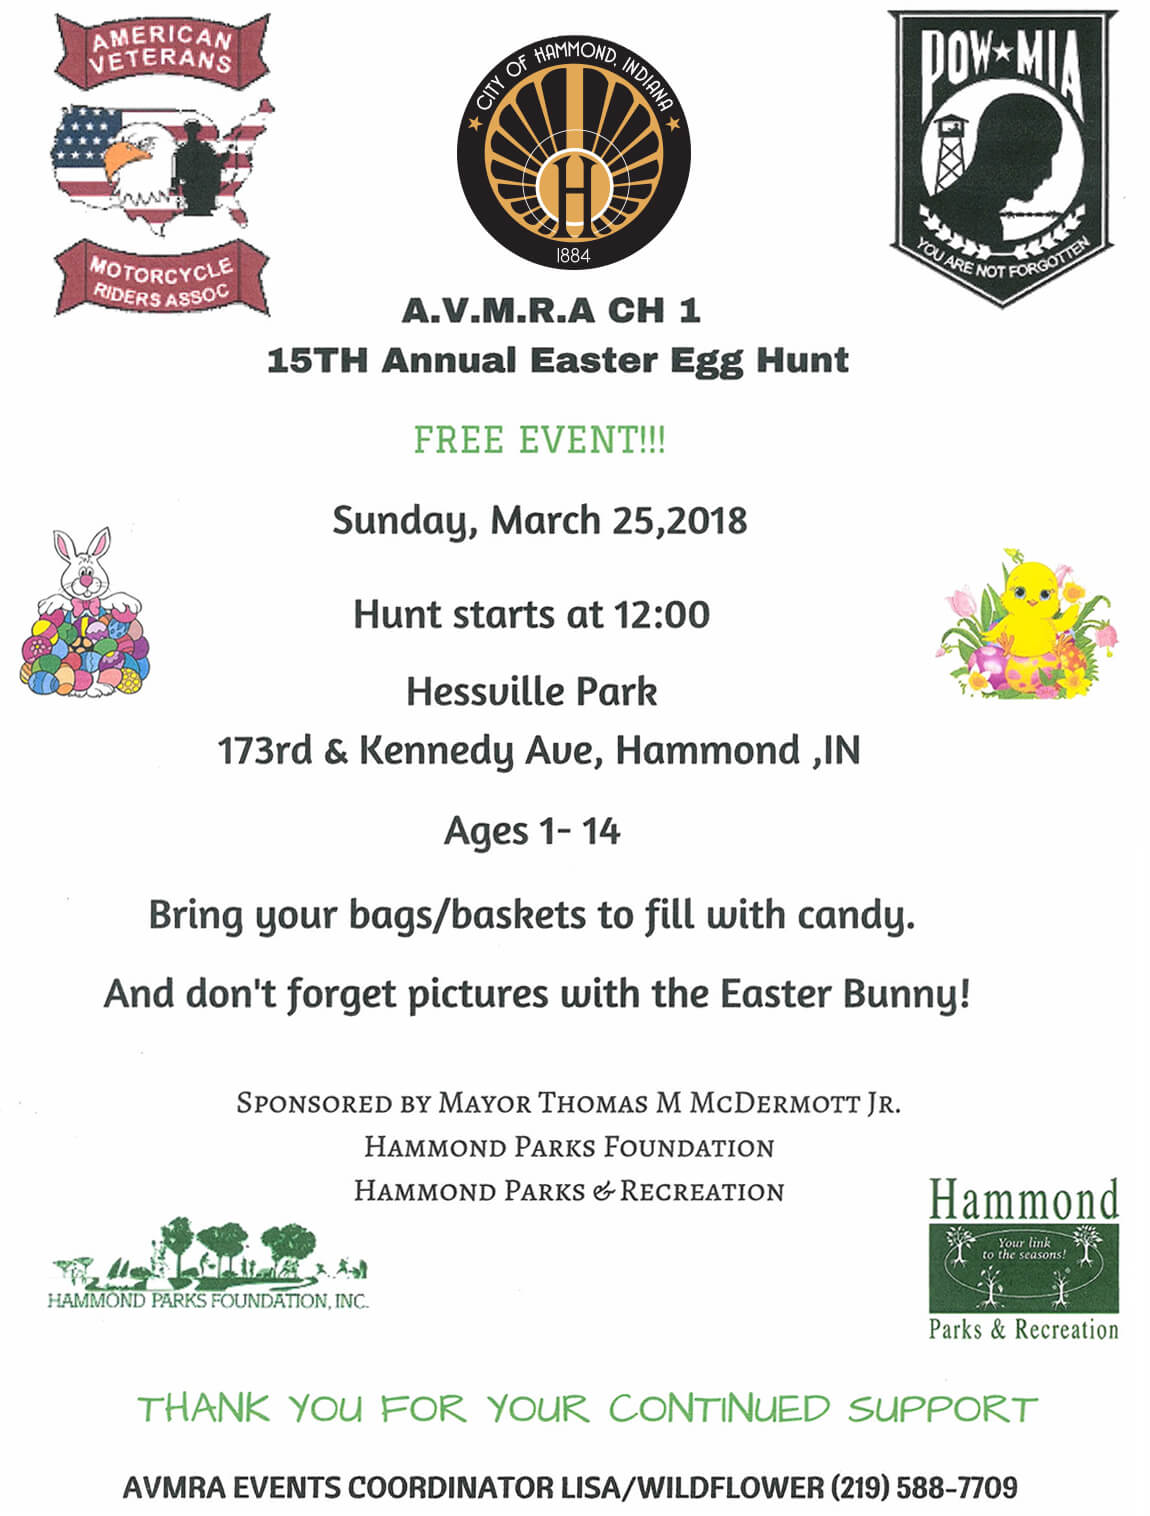 American Veterans Motorcycle Riders Association, Hammond Parks & Recreation and Hammond Parks Foundation invite you to attend our 15th Annual Easter Egg Hunt.